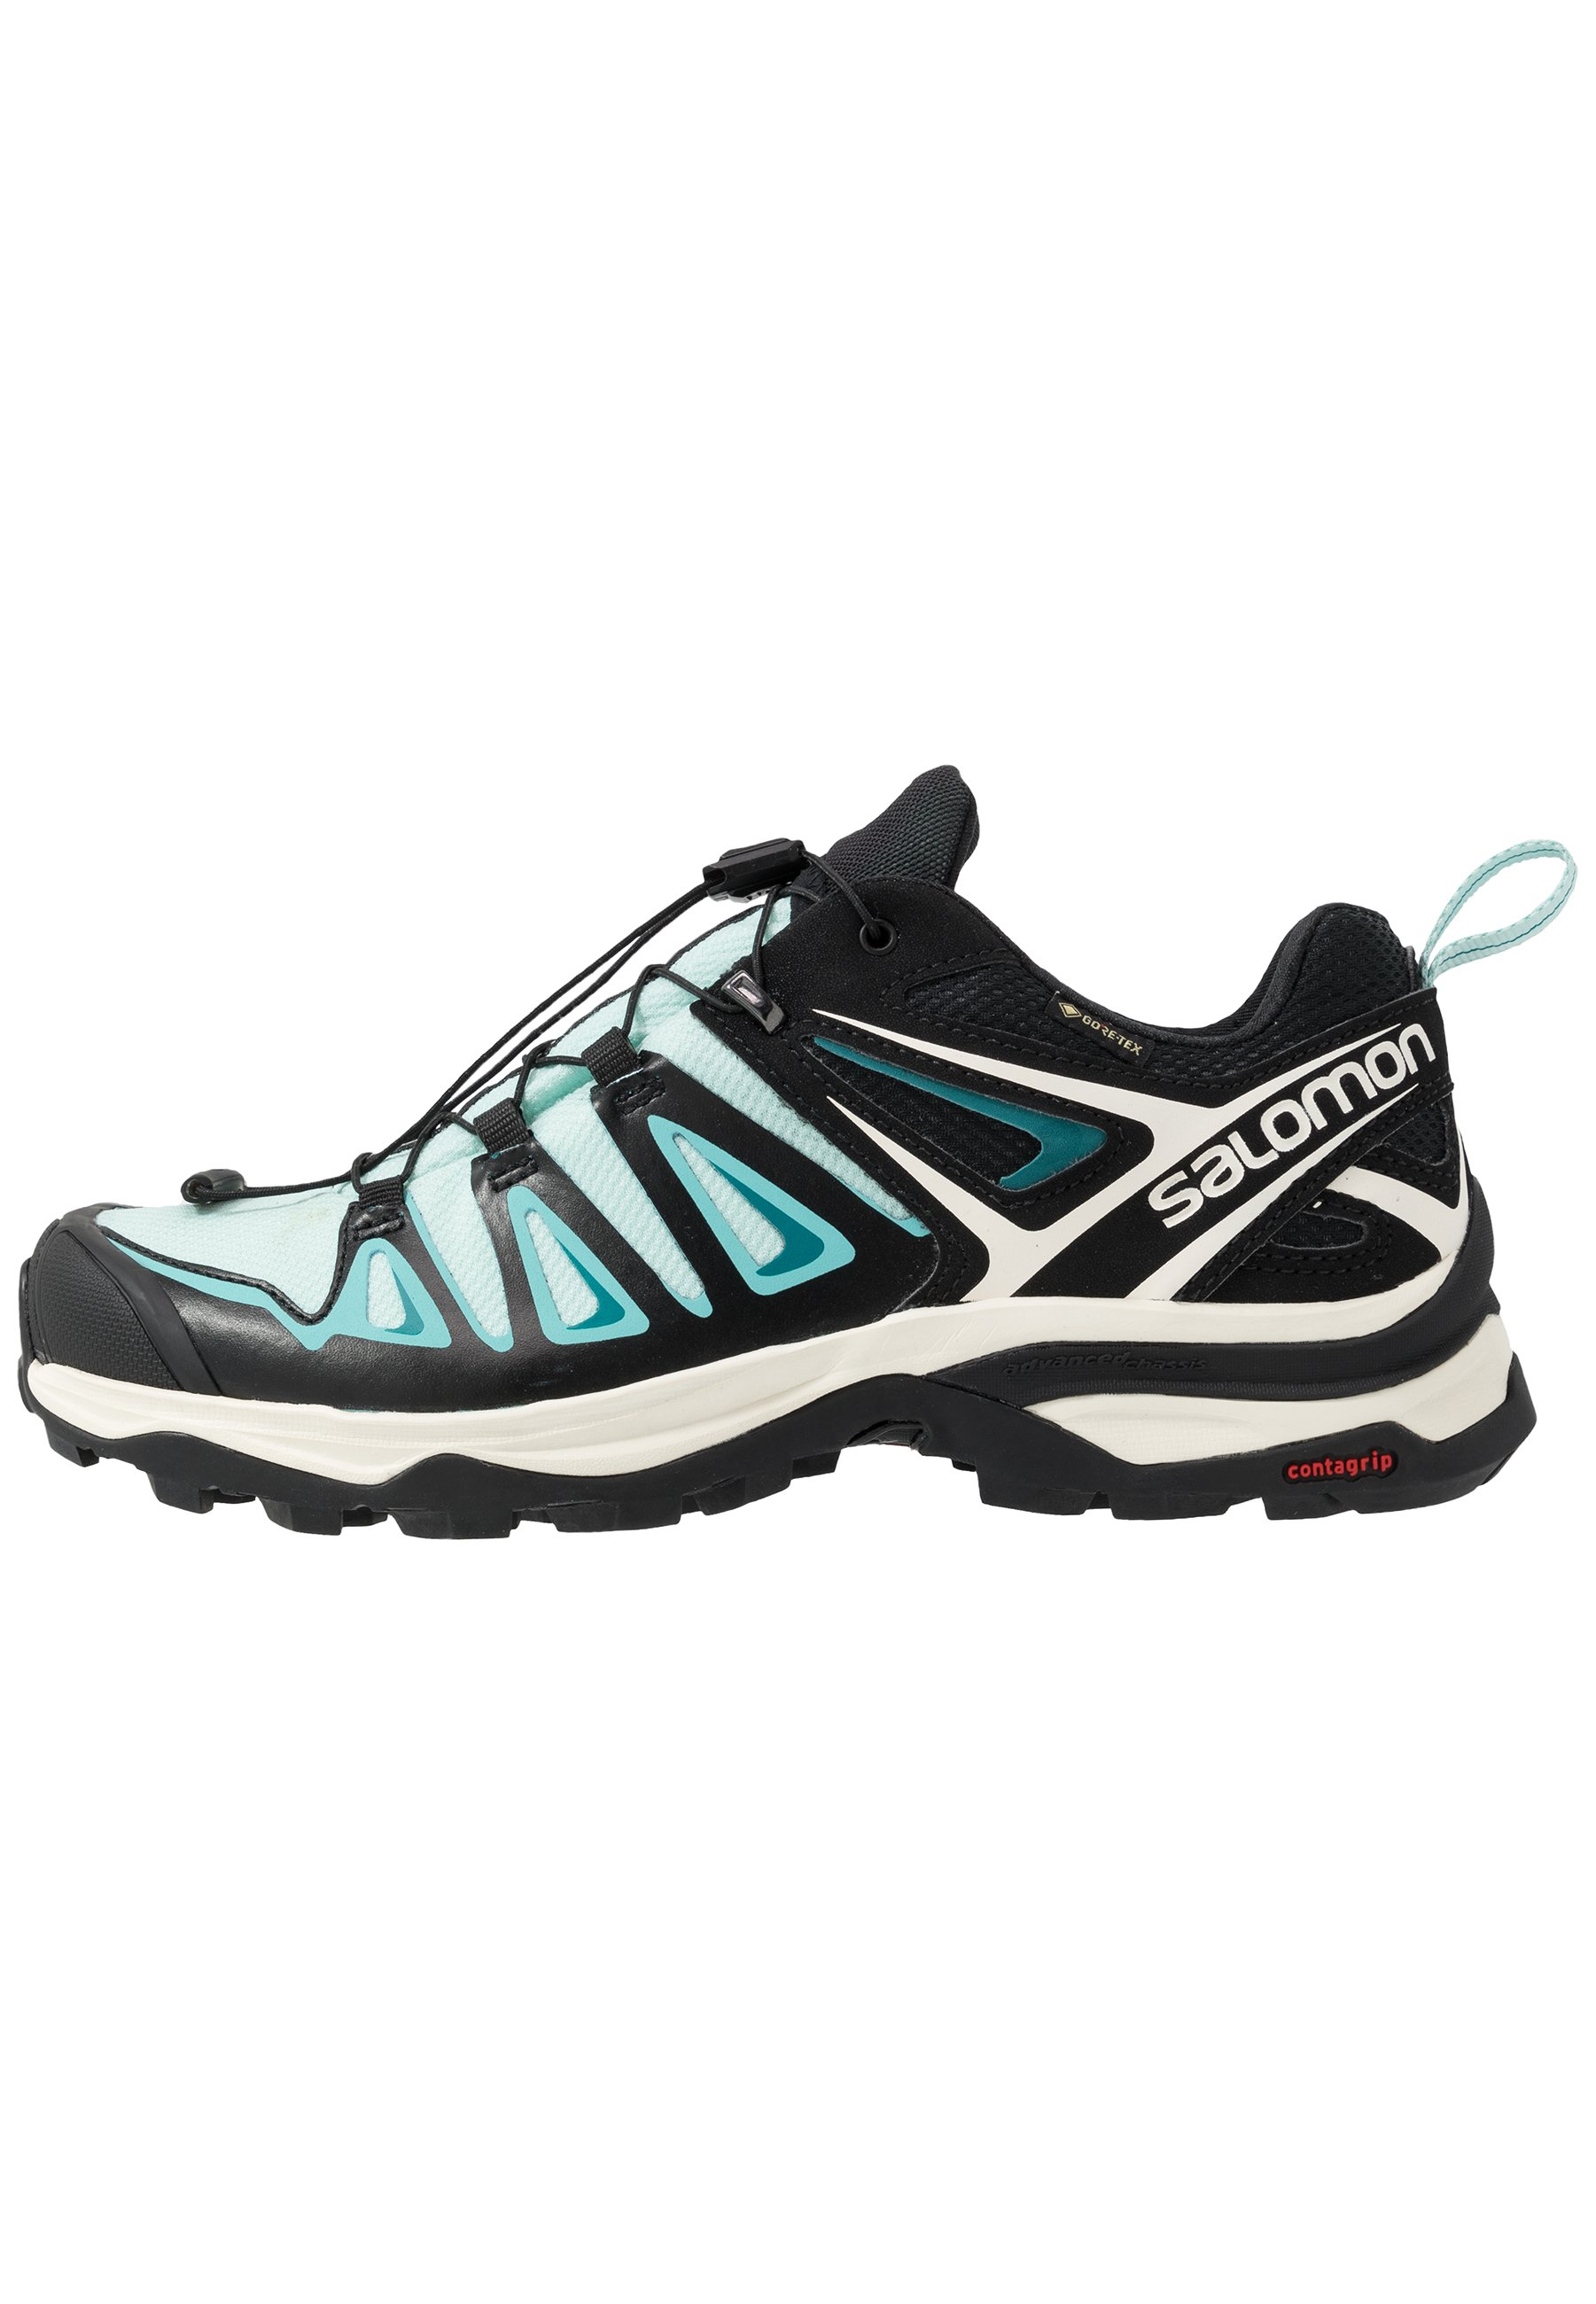 X ULTRA 3 GTX Outdoorschoenen icy mornmeadowbrookvanilla ice